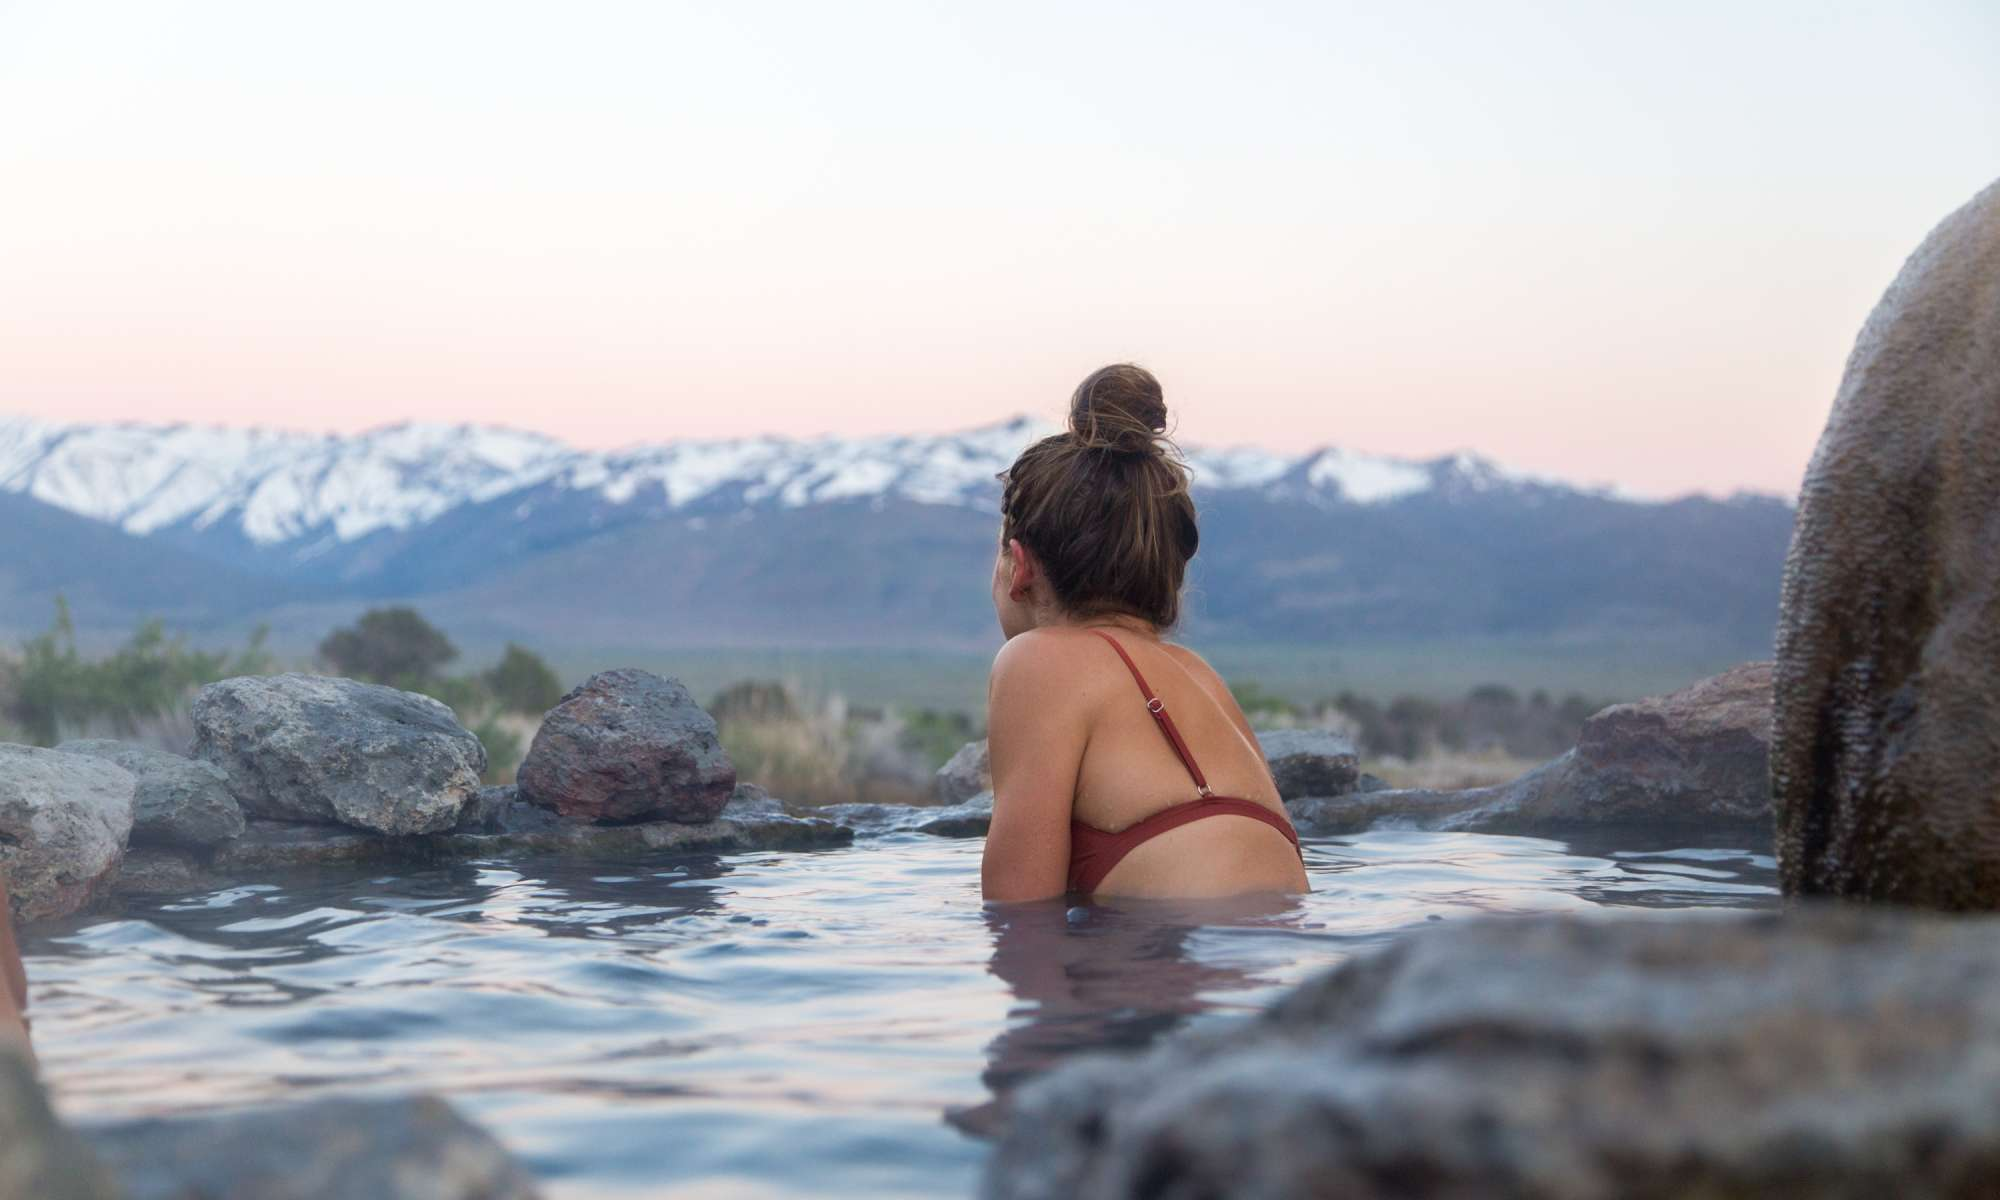 Road Trip-Worthy Hot Springs of the American West